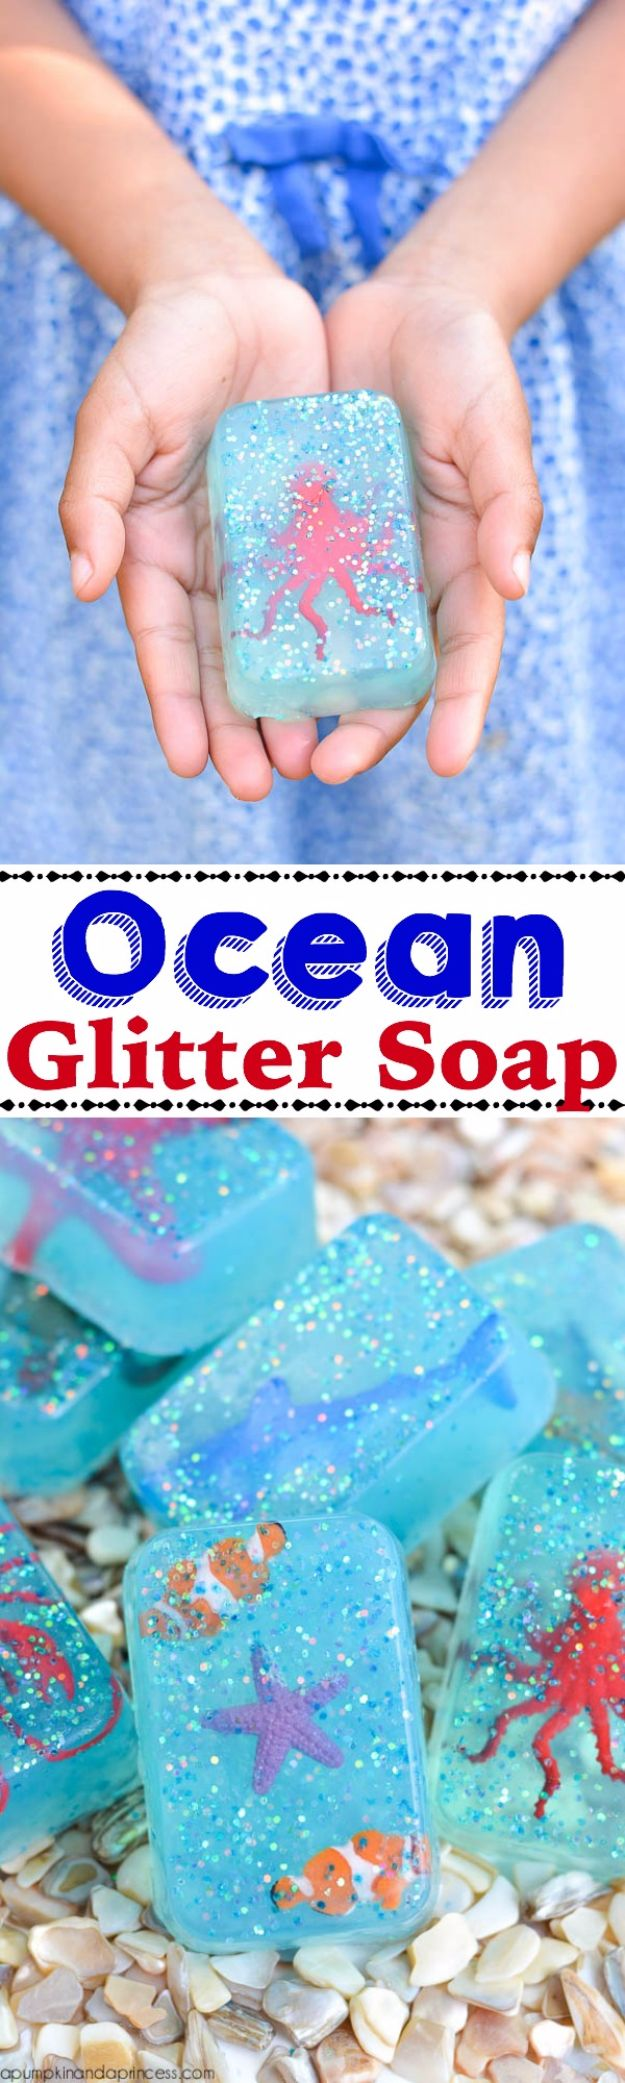 DIY Ideas WIth Glitter - Ocean Glitter Soap - Easy Crafts and Projects for Decoration, Gifts, and Bedroom Decor - How To Make Ombre, Mod Podge and Glitter Mason Jar Gift Ideas For Teens - Easy Clothes and Makeup Crafts For Teenagers http://diyprojectsforteens.com/glitter-crafts-ideas